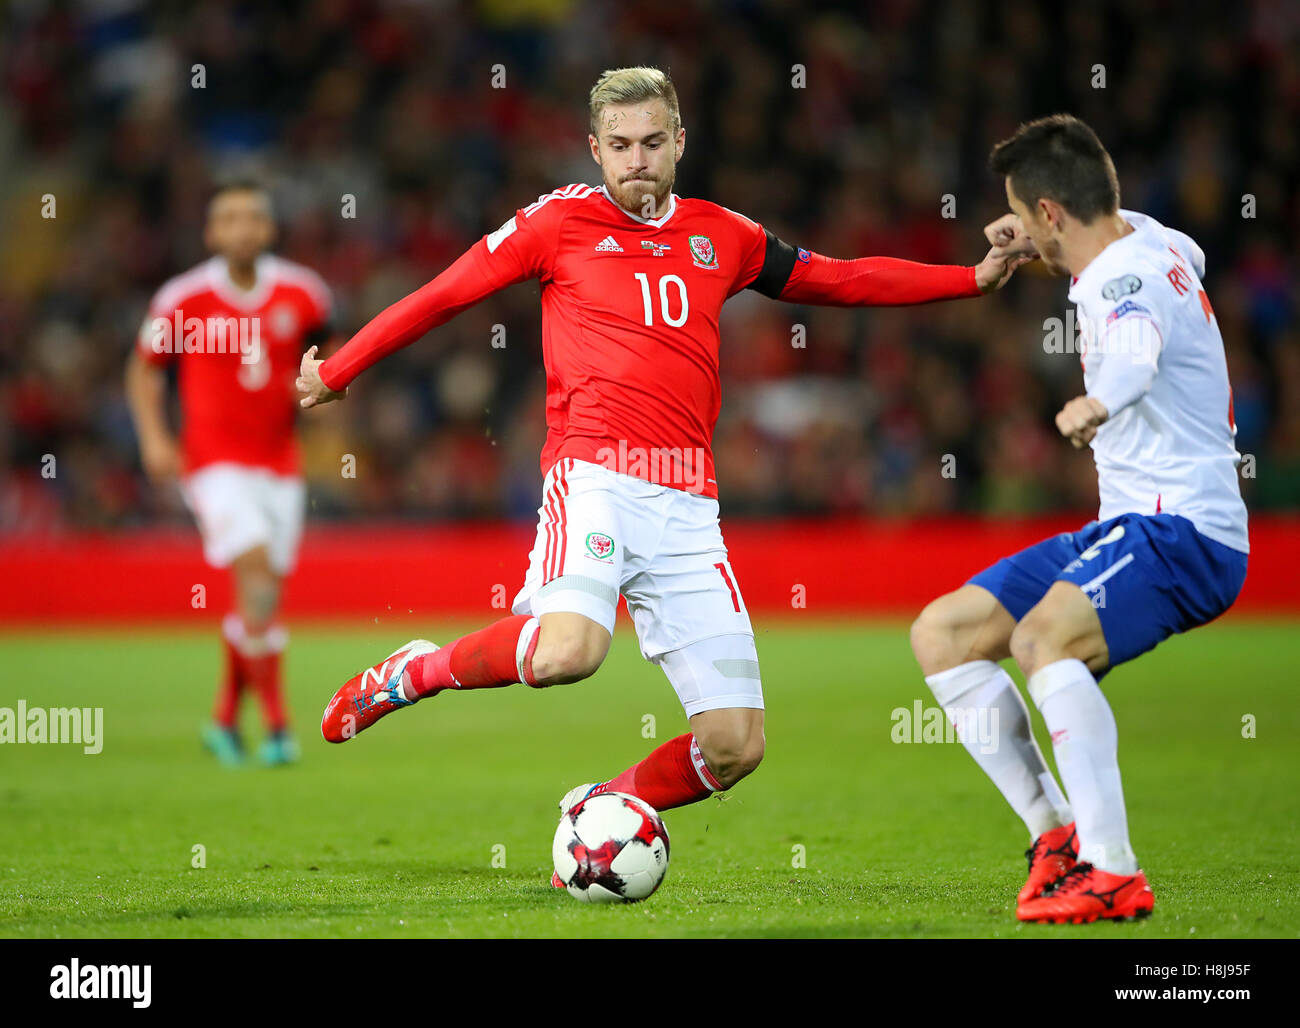 Wales' Aaron Ramsey in action during the 2018 FIFA World Cup Qualifying, Group D match at the Cardiff City Stadium. Stock Photo